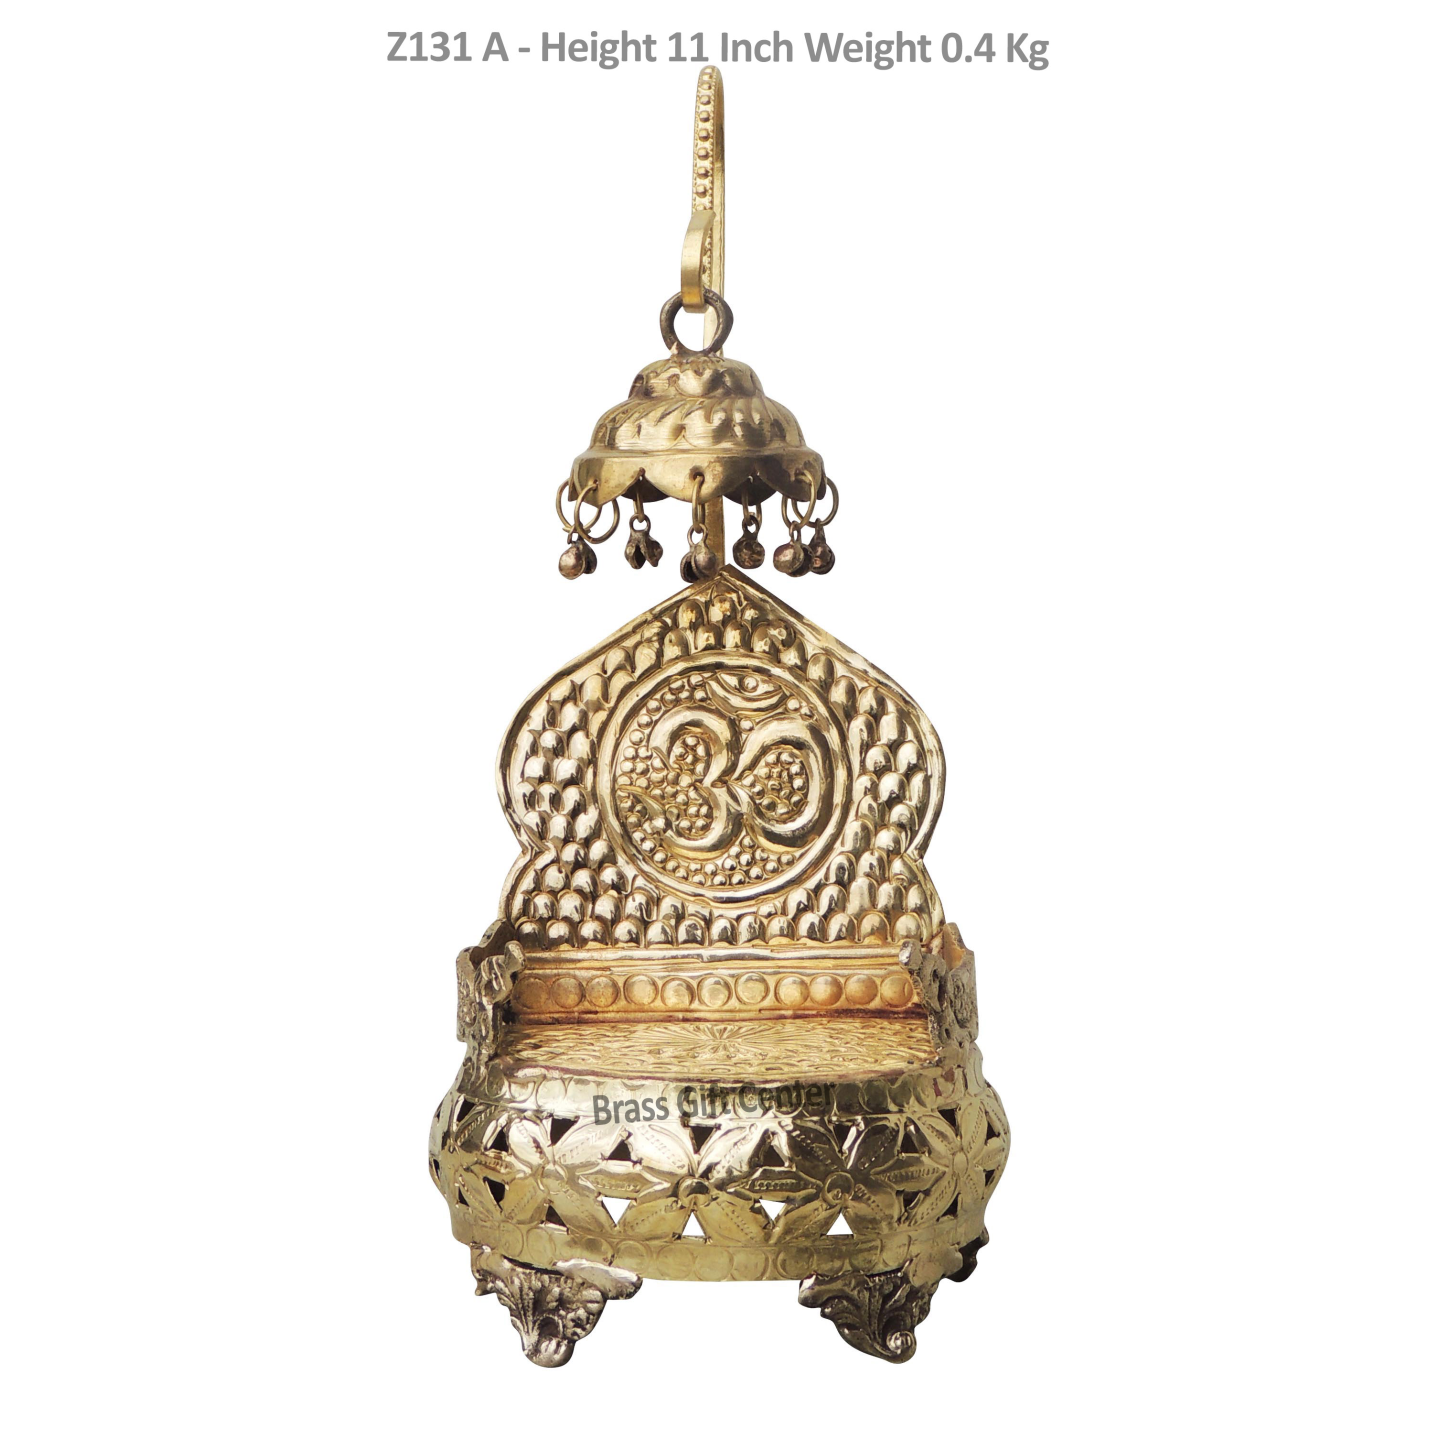 Brass Singhasan For God Idol With Brass Finish Height - 11 Inch (Z131 A)